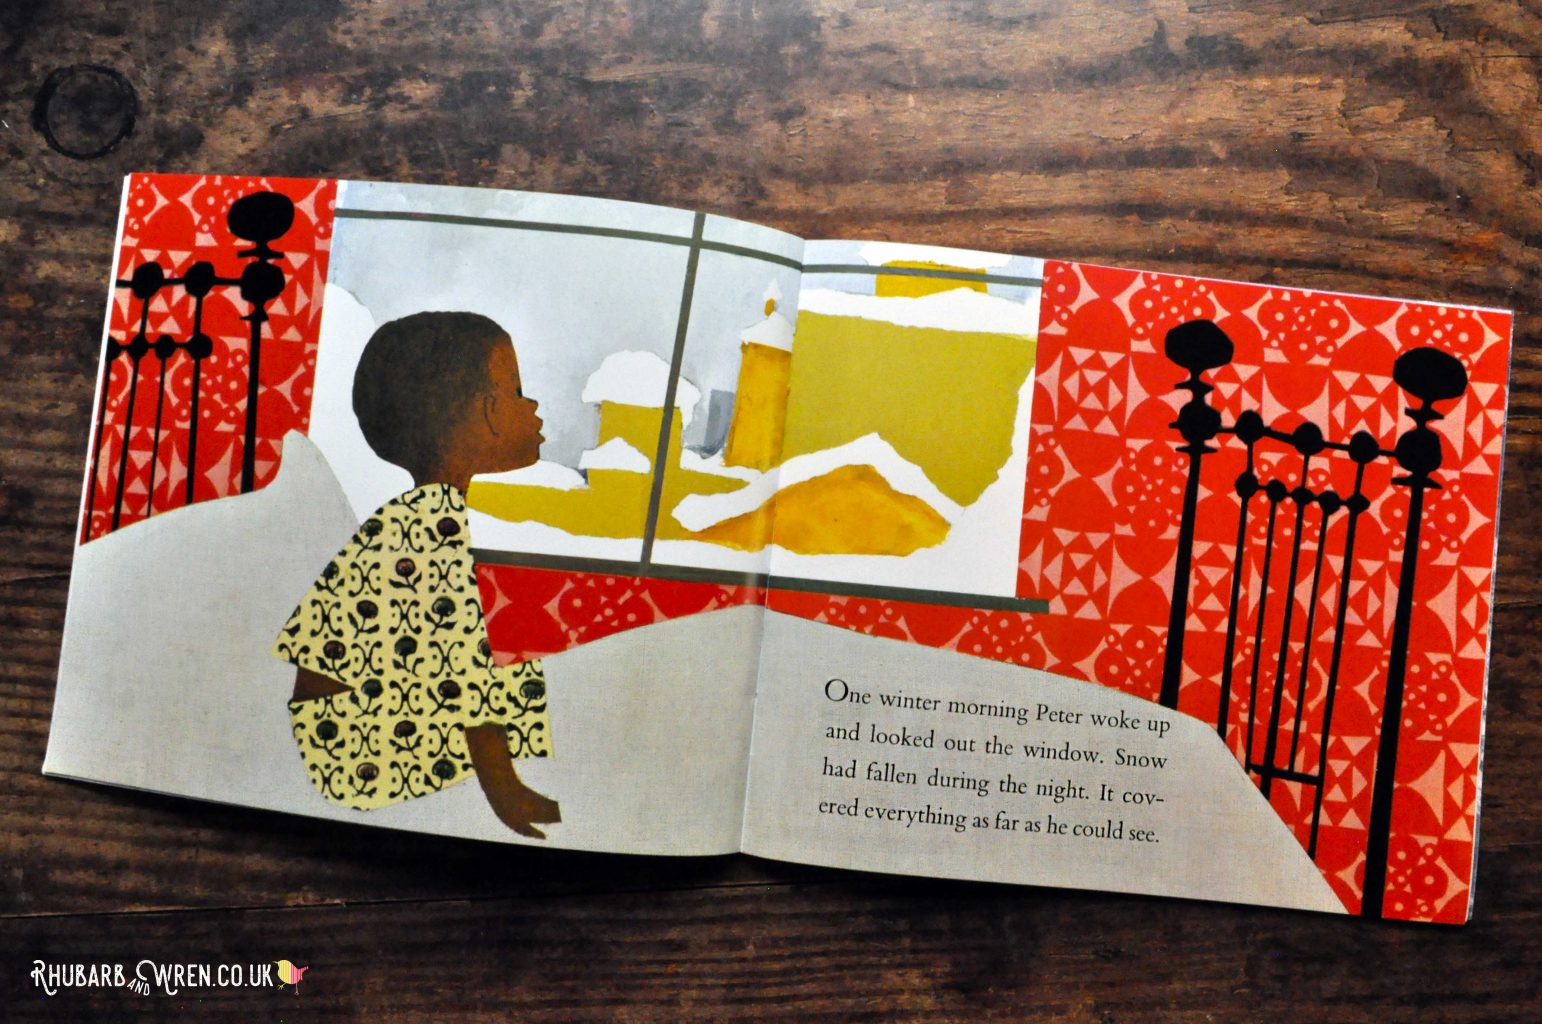 Pages from Snowy Day by Ezra Jack Keats.